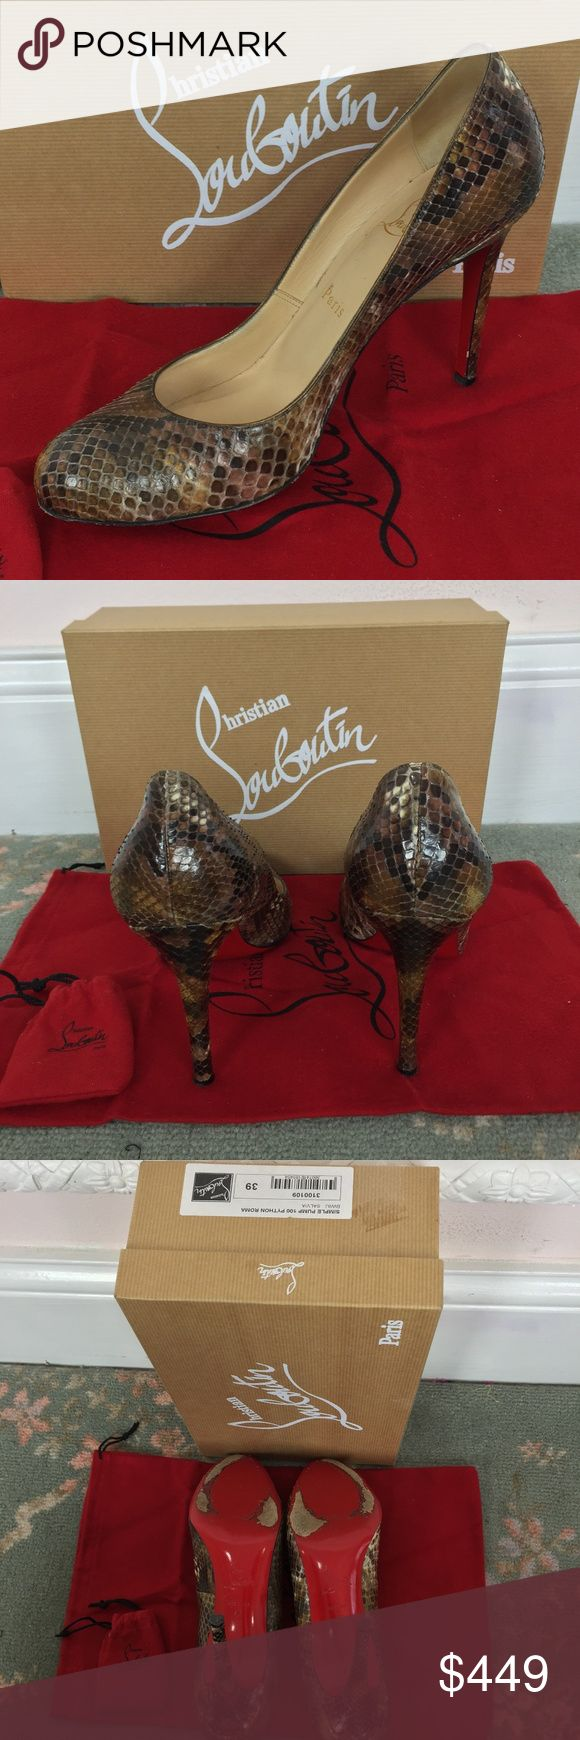 Christian Louboutin Simple Pump 100 Python Roma 39 I purchased these heels directly from Saks 5th so I guarantee authenticity.  Comes with original box ,dustbag, & spare heel tips  Fit is similar to all Louboutins- I normally wear a size 8 or 8.5 in other brands but purchased 9 (39) in these shoes because Loubous run small and they fit me well in this size. Gently worn-EXCELLENT condition- red bottoms minimally scuffed  3 in. heel -All pics are the actual shoes I'm selling Open to REASONABLE…